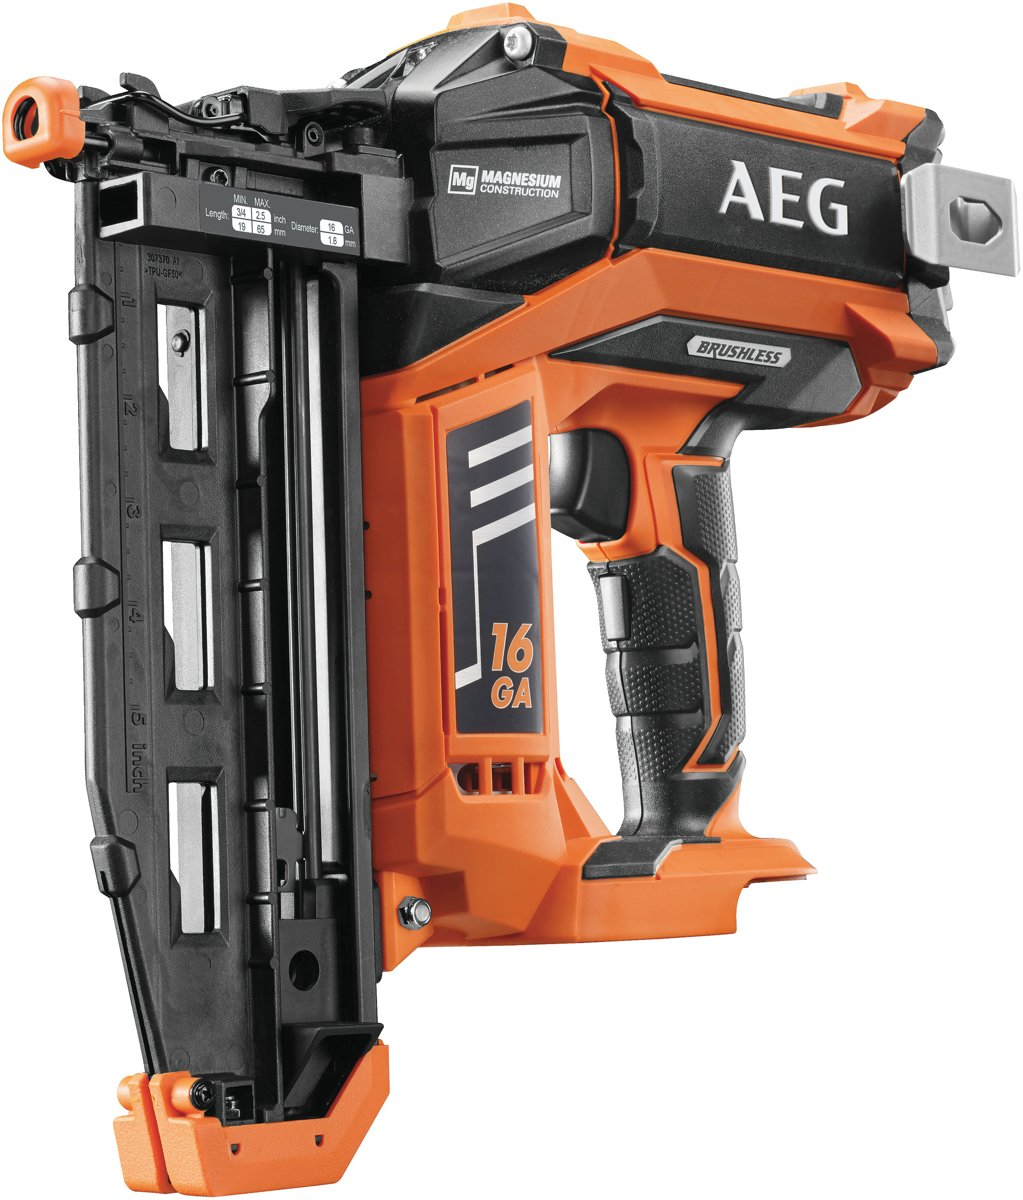 AEG B16N16 Tacker - 18V - 16Ga - Koolborstelloos - Body